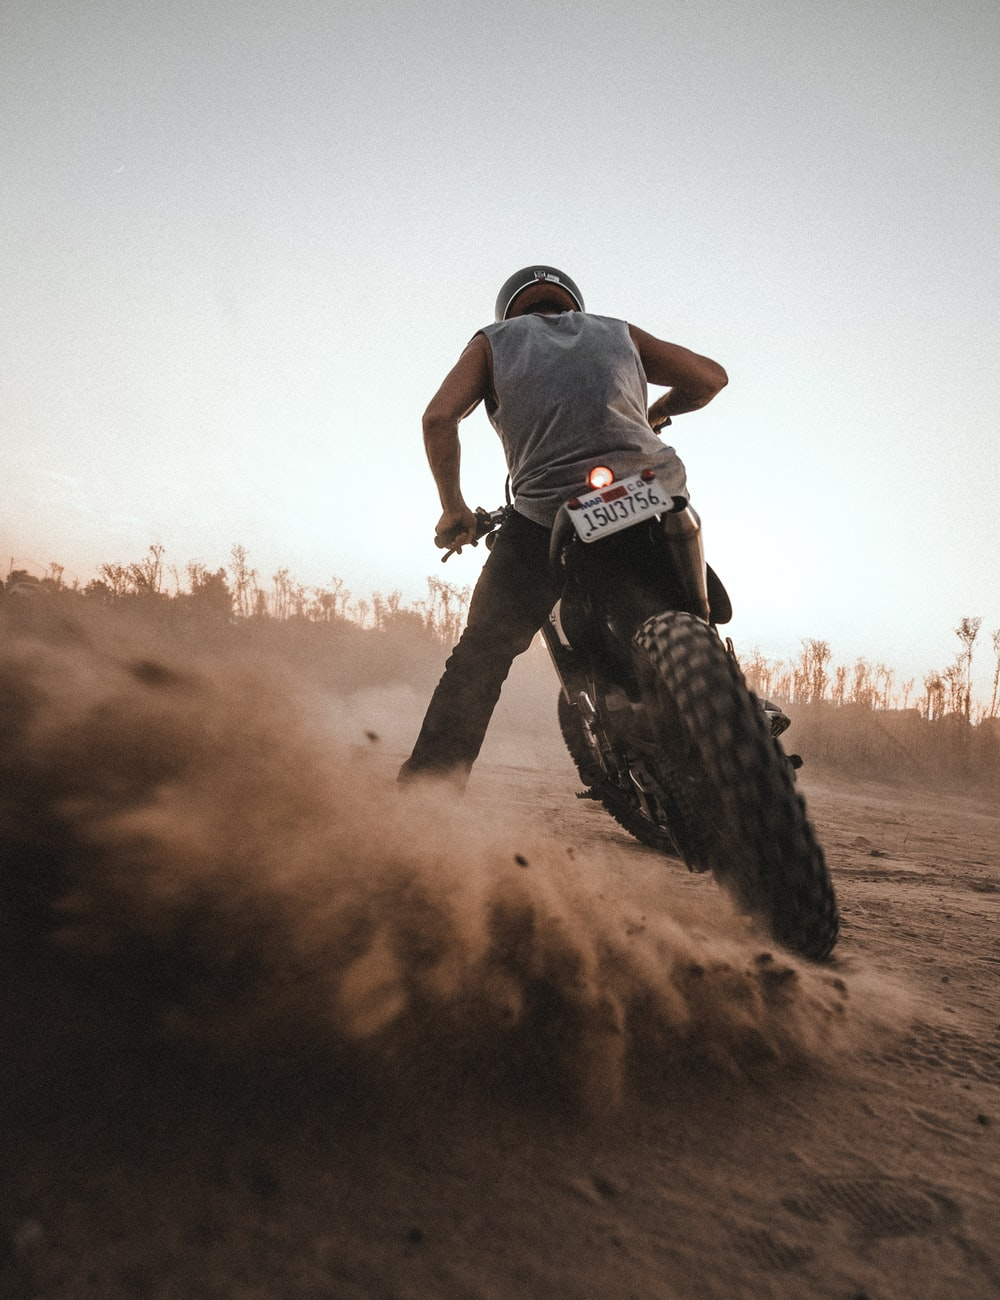 man in black t-shirt and black pants riding motocross dirt bike on brown field during